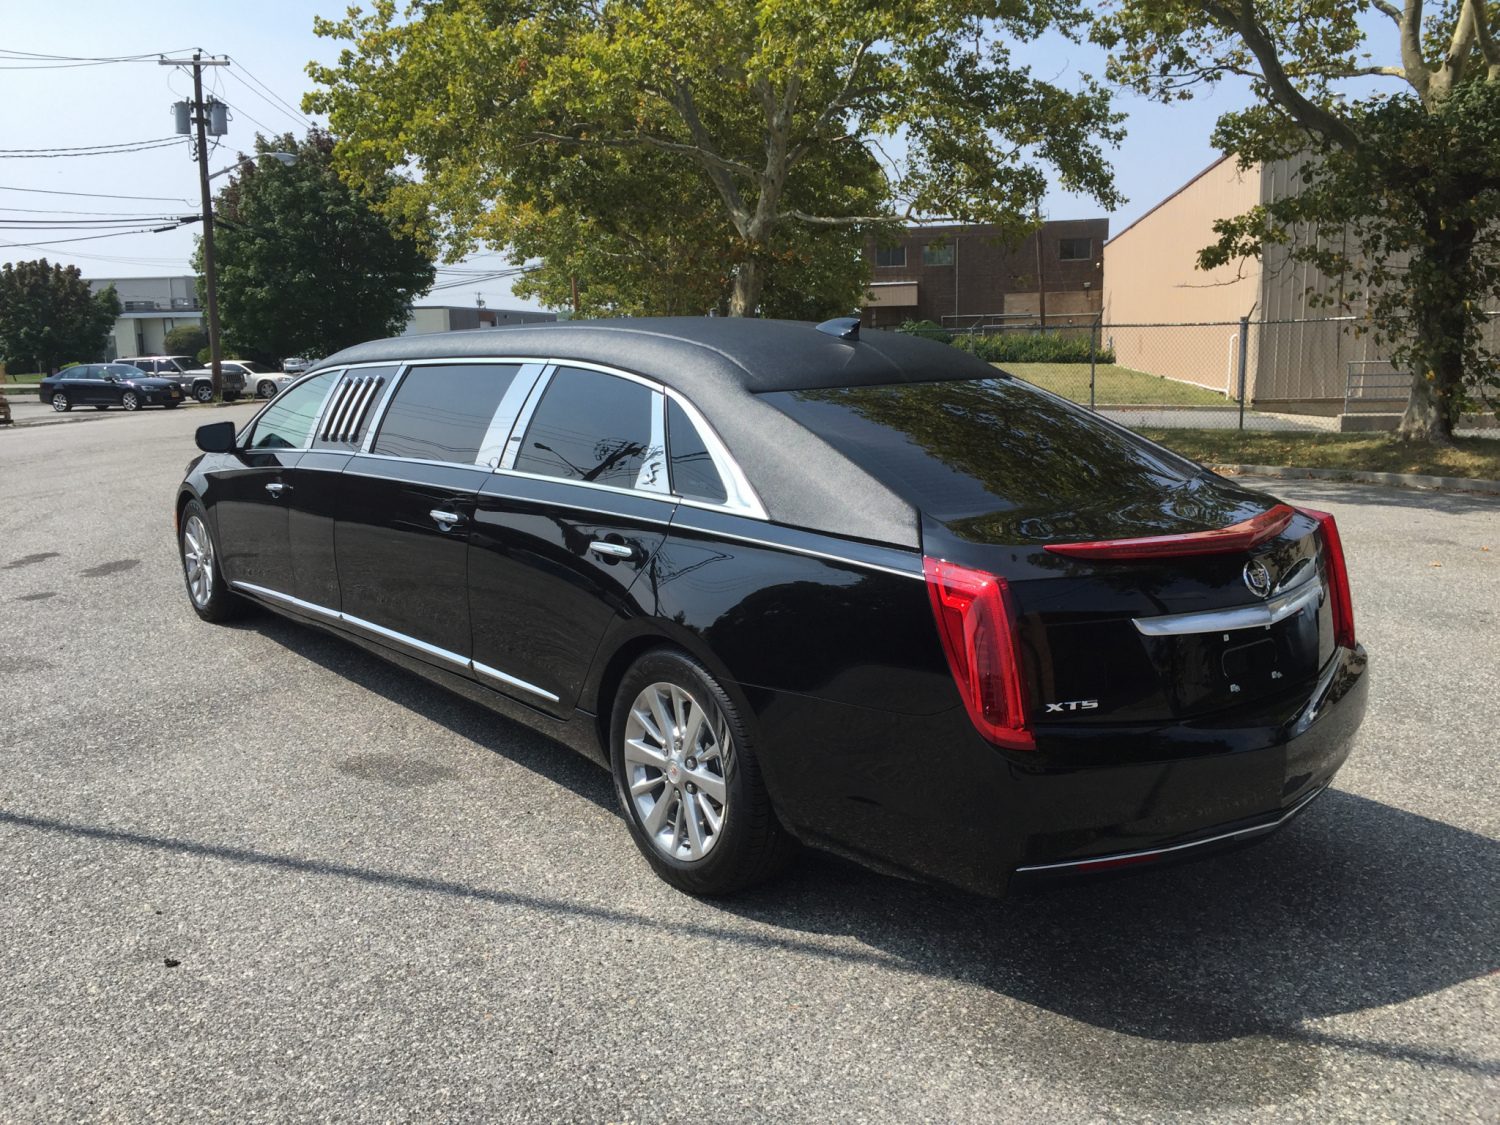 2016 cadillac xts limousine. Black Bedroom Furniture Sets. Home Design Ideas